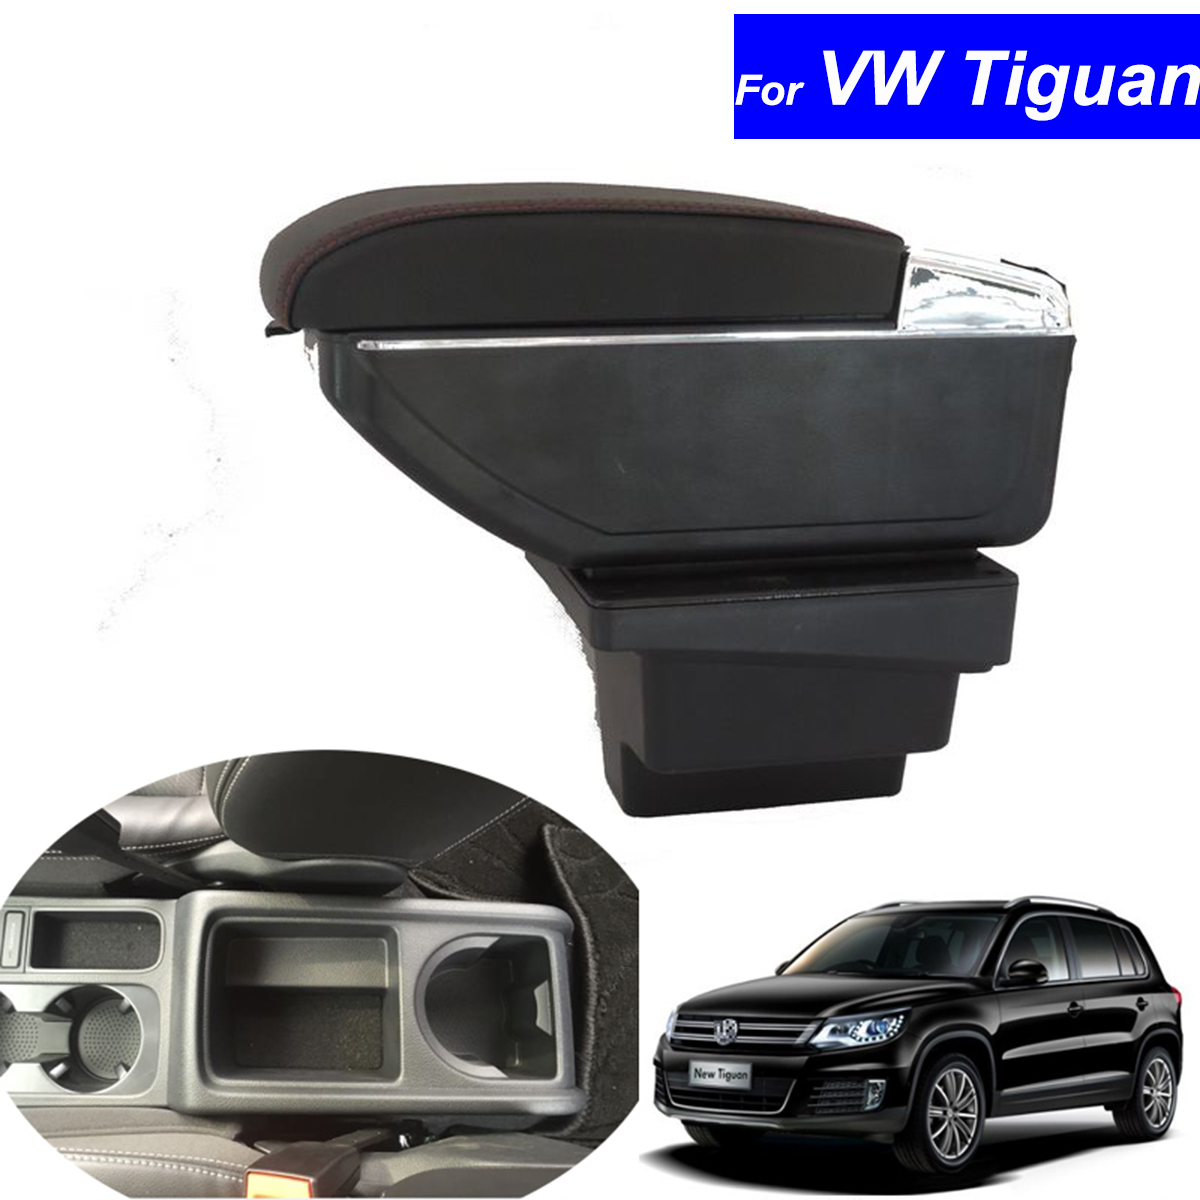 Leather Car Armrest Center Console Storage Box Auto Accessories Decoration for Volkswagen VW Tiguan 2009 ~ 2016 Free Shipping car rear trunk security shield cargo cover for volkswagen vw tiguan 2016 2017 2018 high qualit black beige auto accessories